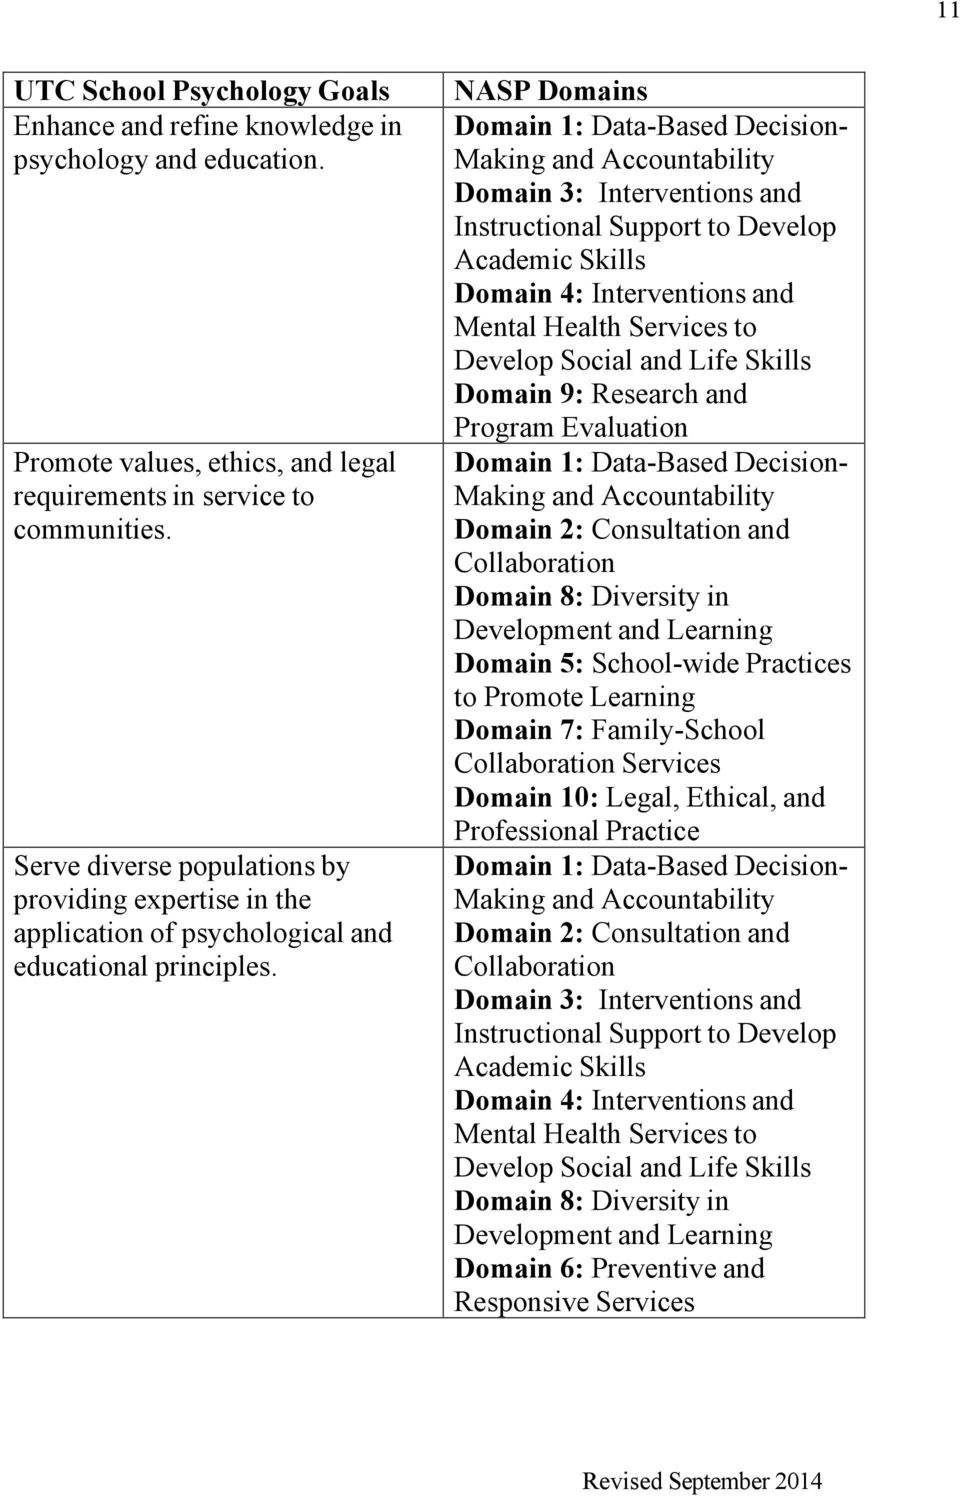 NASP Domains Domain 1: Data-Based Decision- Making and Accountability Domain 3: Interventions and Instructional Support to Develop Academic Skills Domain 4: Interventions and Mental Health Services